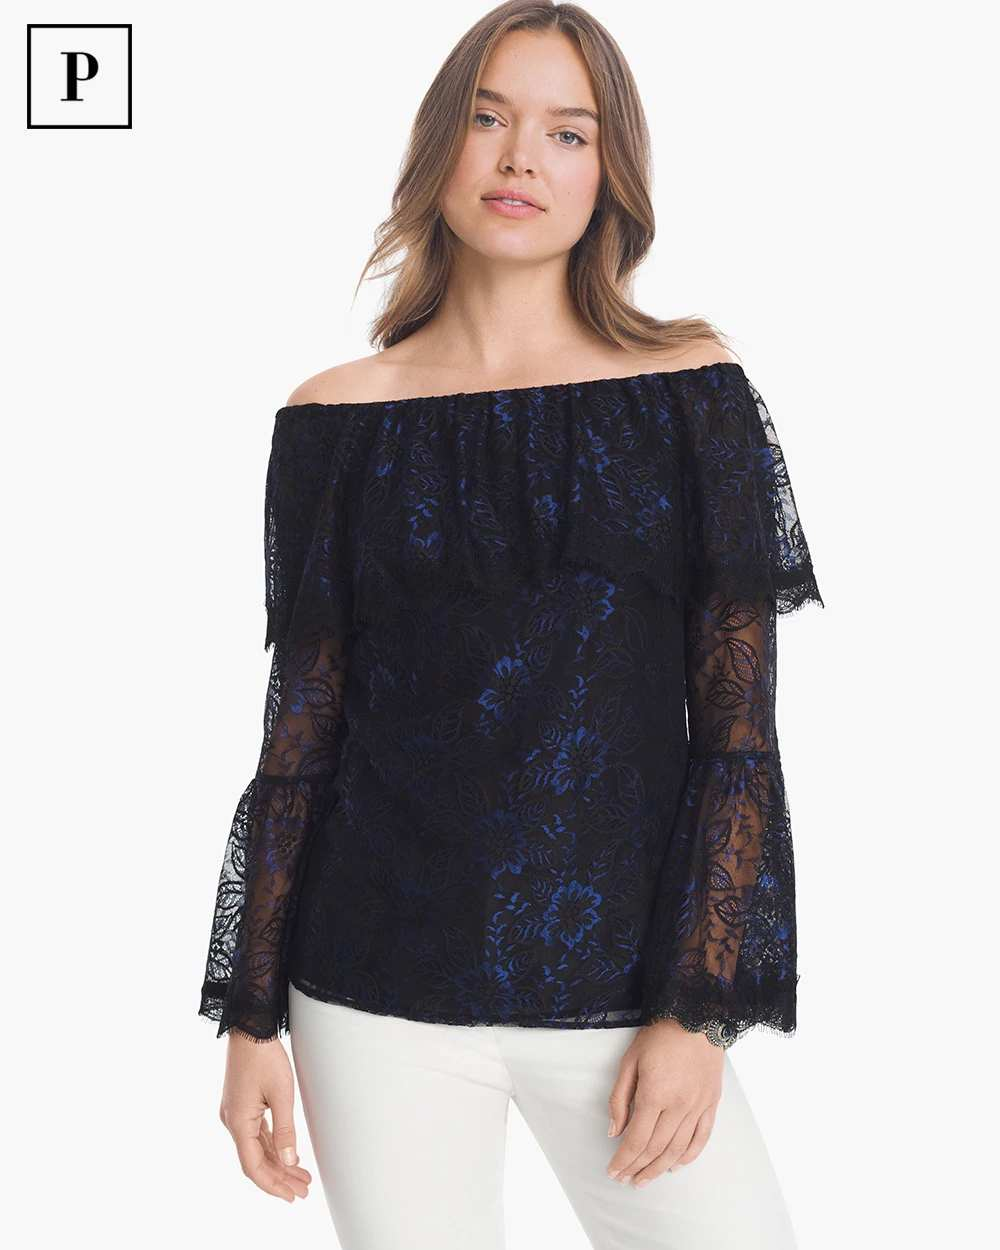 PETITE OFF-THE-SHOULDER LACE TOP | Hermosaz